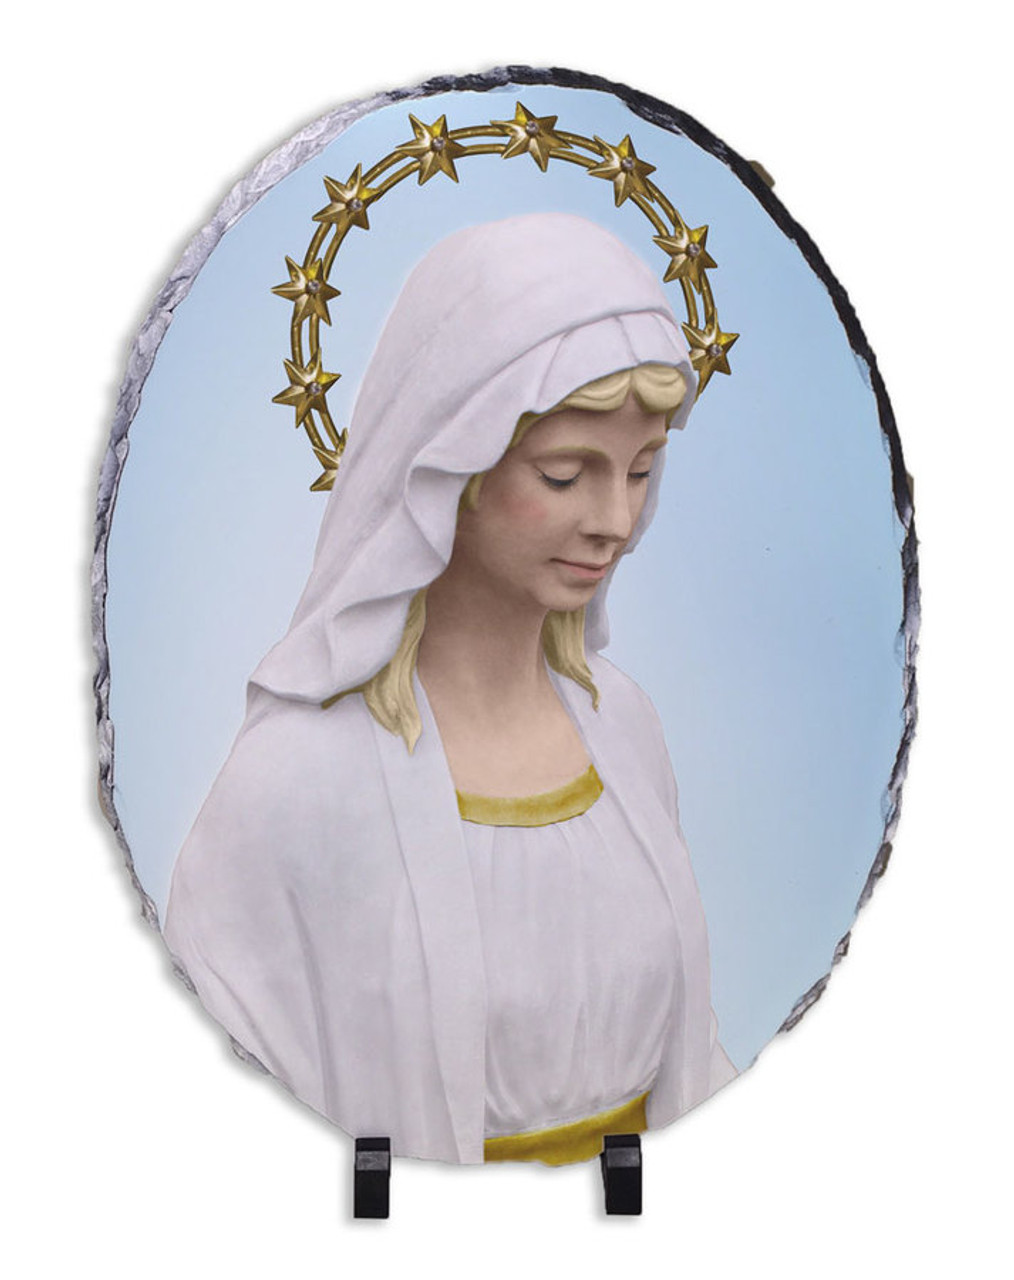 Our Lady of Good Help Oval Slate Tile